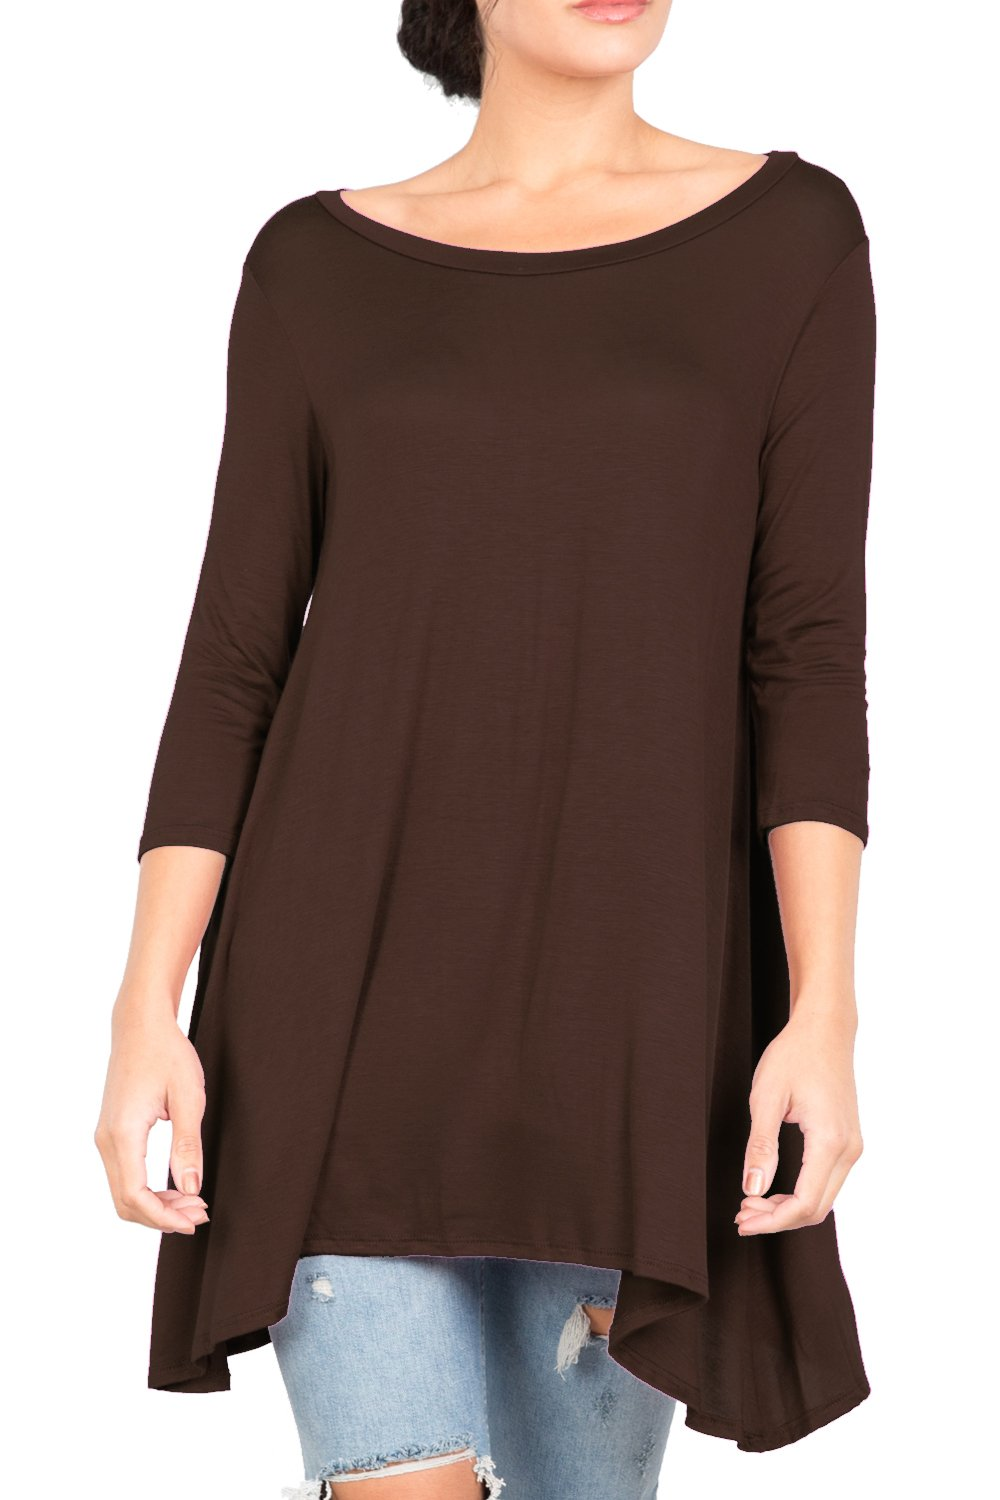 Love In T2411 3/4 Sleeve Round Neck Relaxed A-Line Tunic T Shirt Top Brown M